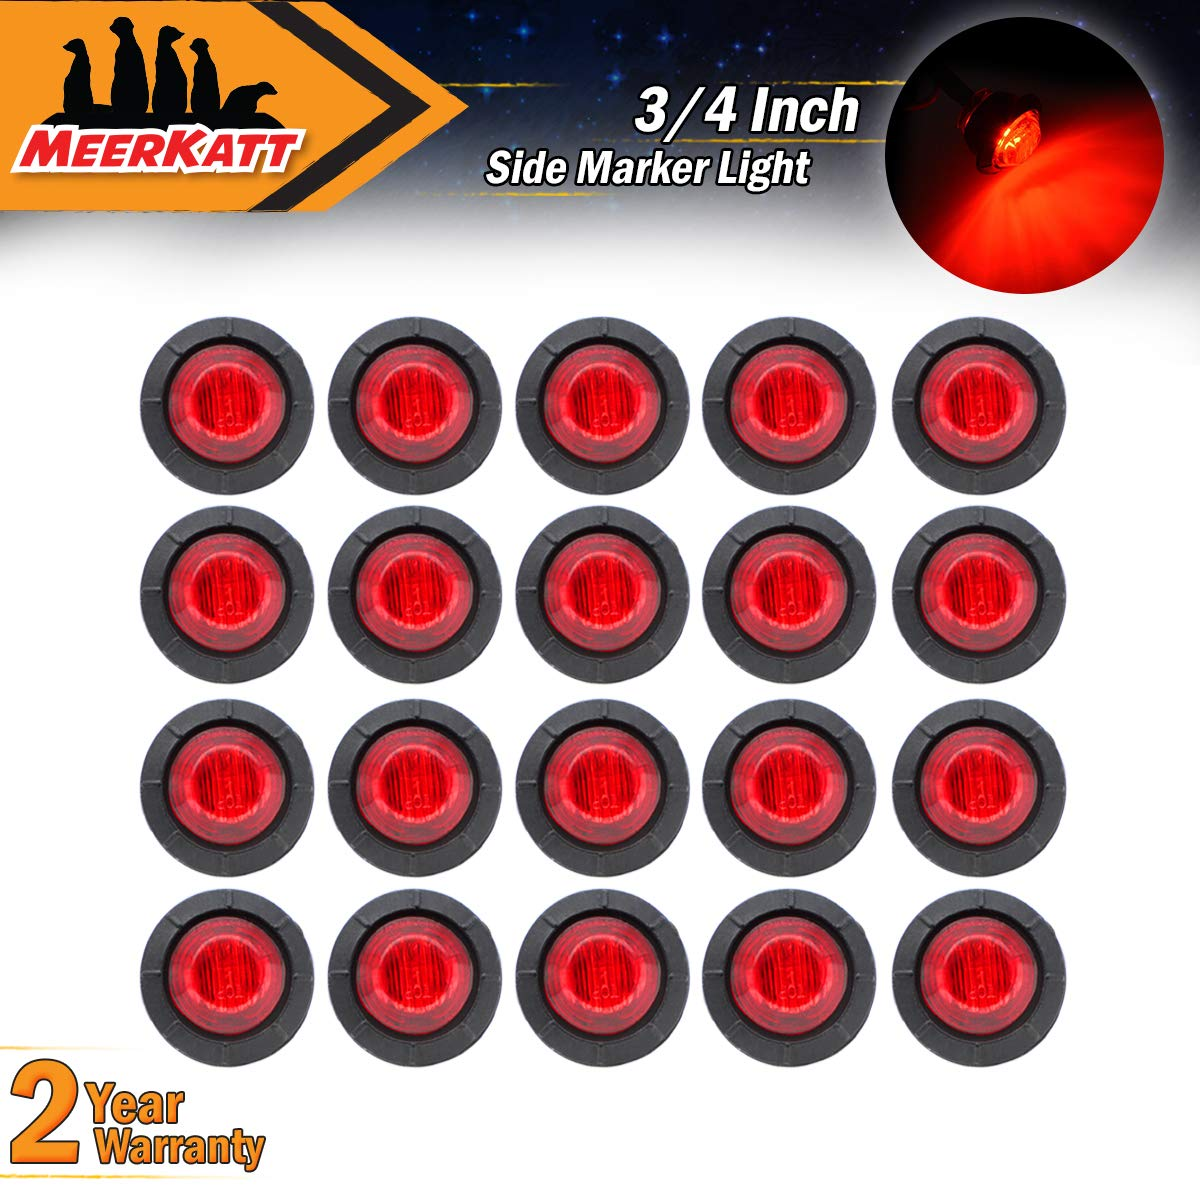 Meerkatt (Pack of 20) 3/4' Inch Miniature Round 10 Red + 10 Green LED Bullet Clearance Lamp Penny Side Marker Universal Indicator Light Waterproof Lorry Flatbed Boat Truck RV Trailer Grommets 12V DC